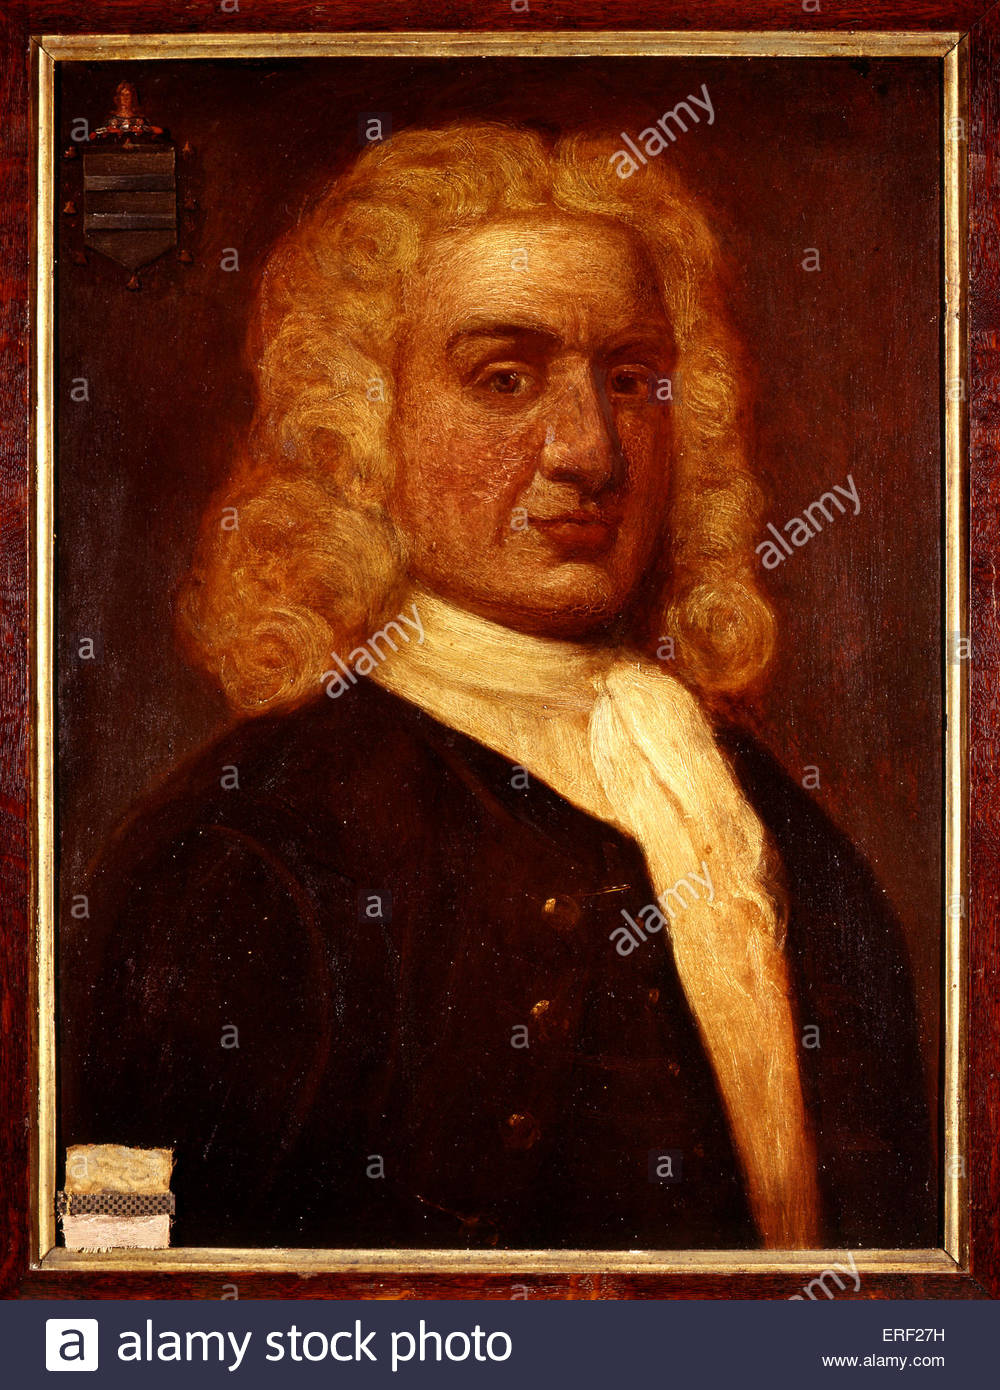 Captain William Kidd by Sir James Thornhill. Scottish sailor remembered for his trial and execution for piracy after - Stock Image